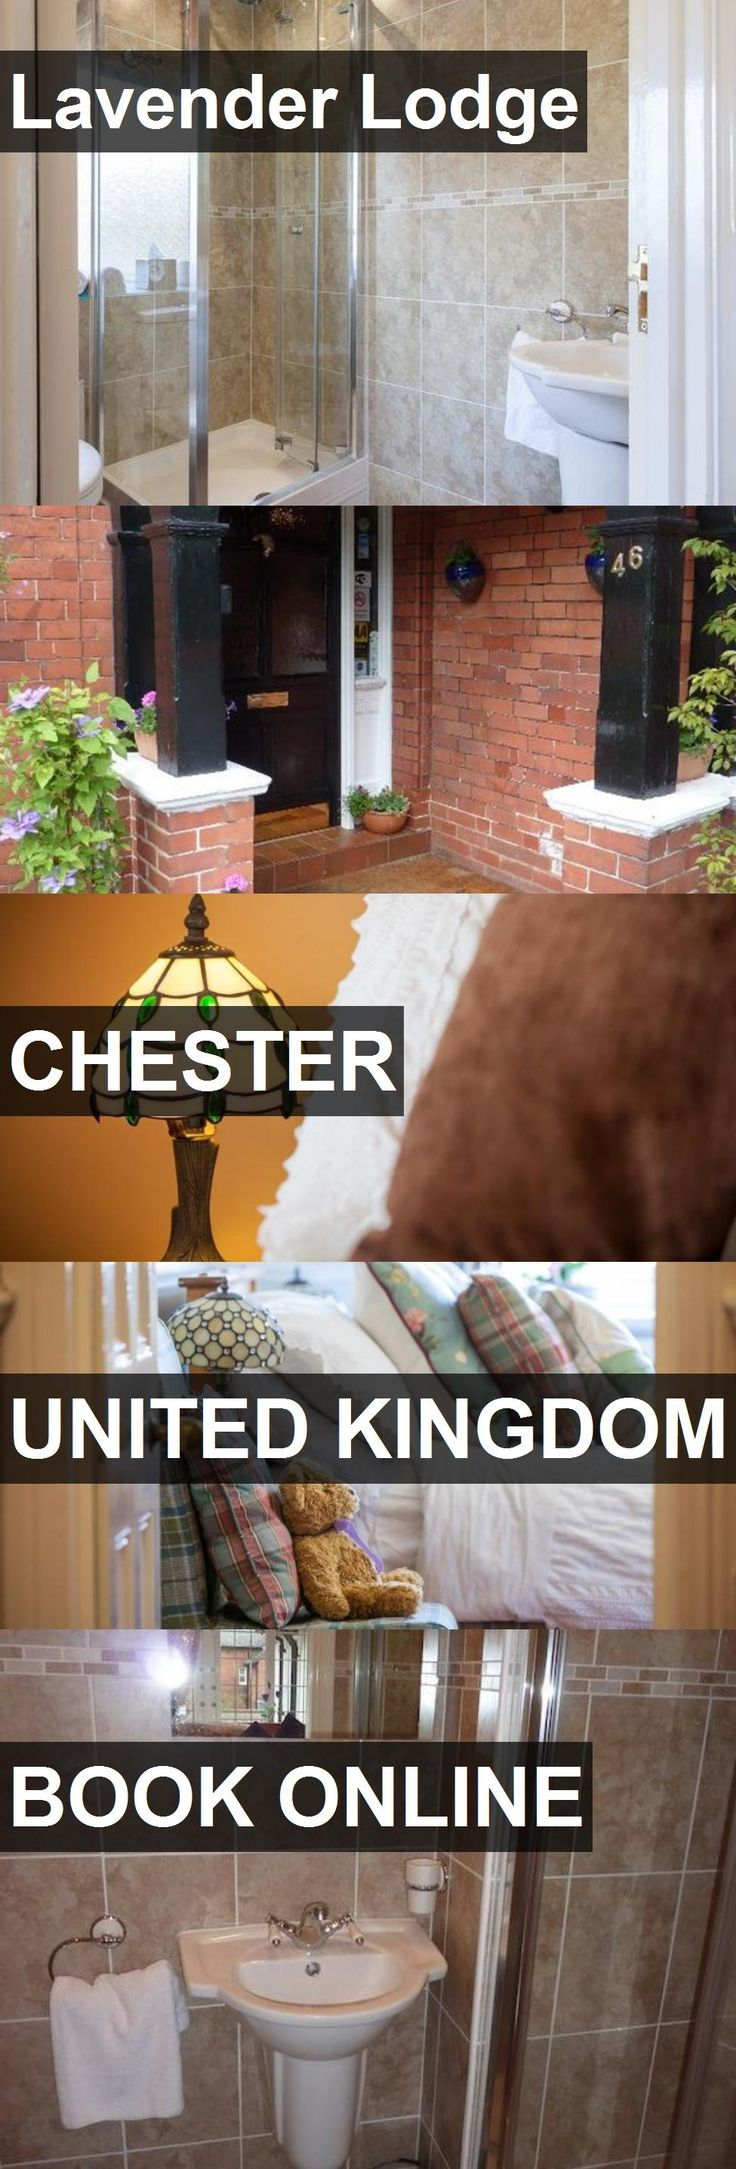 Hotel Lavender Lodge in Chester, United Kingdom. For more information, photos, reviews and best prices please follow the link. #UnitedKingdom #Chester #LavenderLodge #hotel #travel #vacation